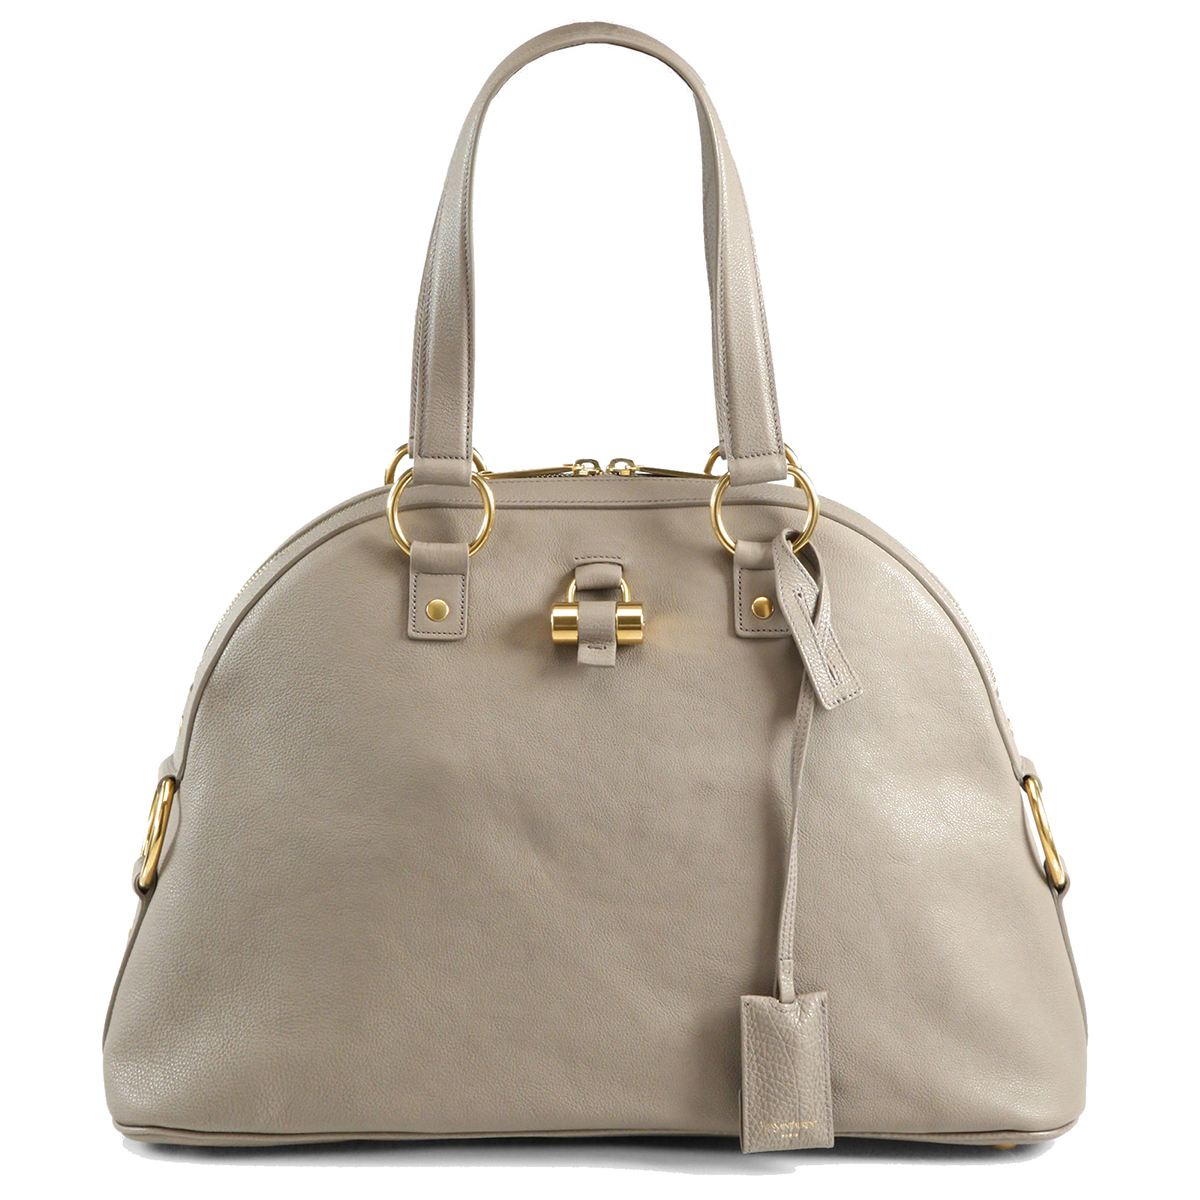 Discount Designer Yves Saint Laurent YSL Handbags | Queen Bee of ...